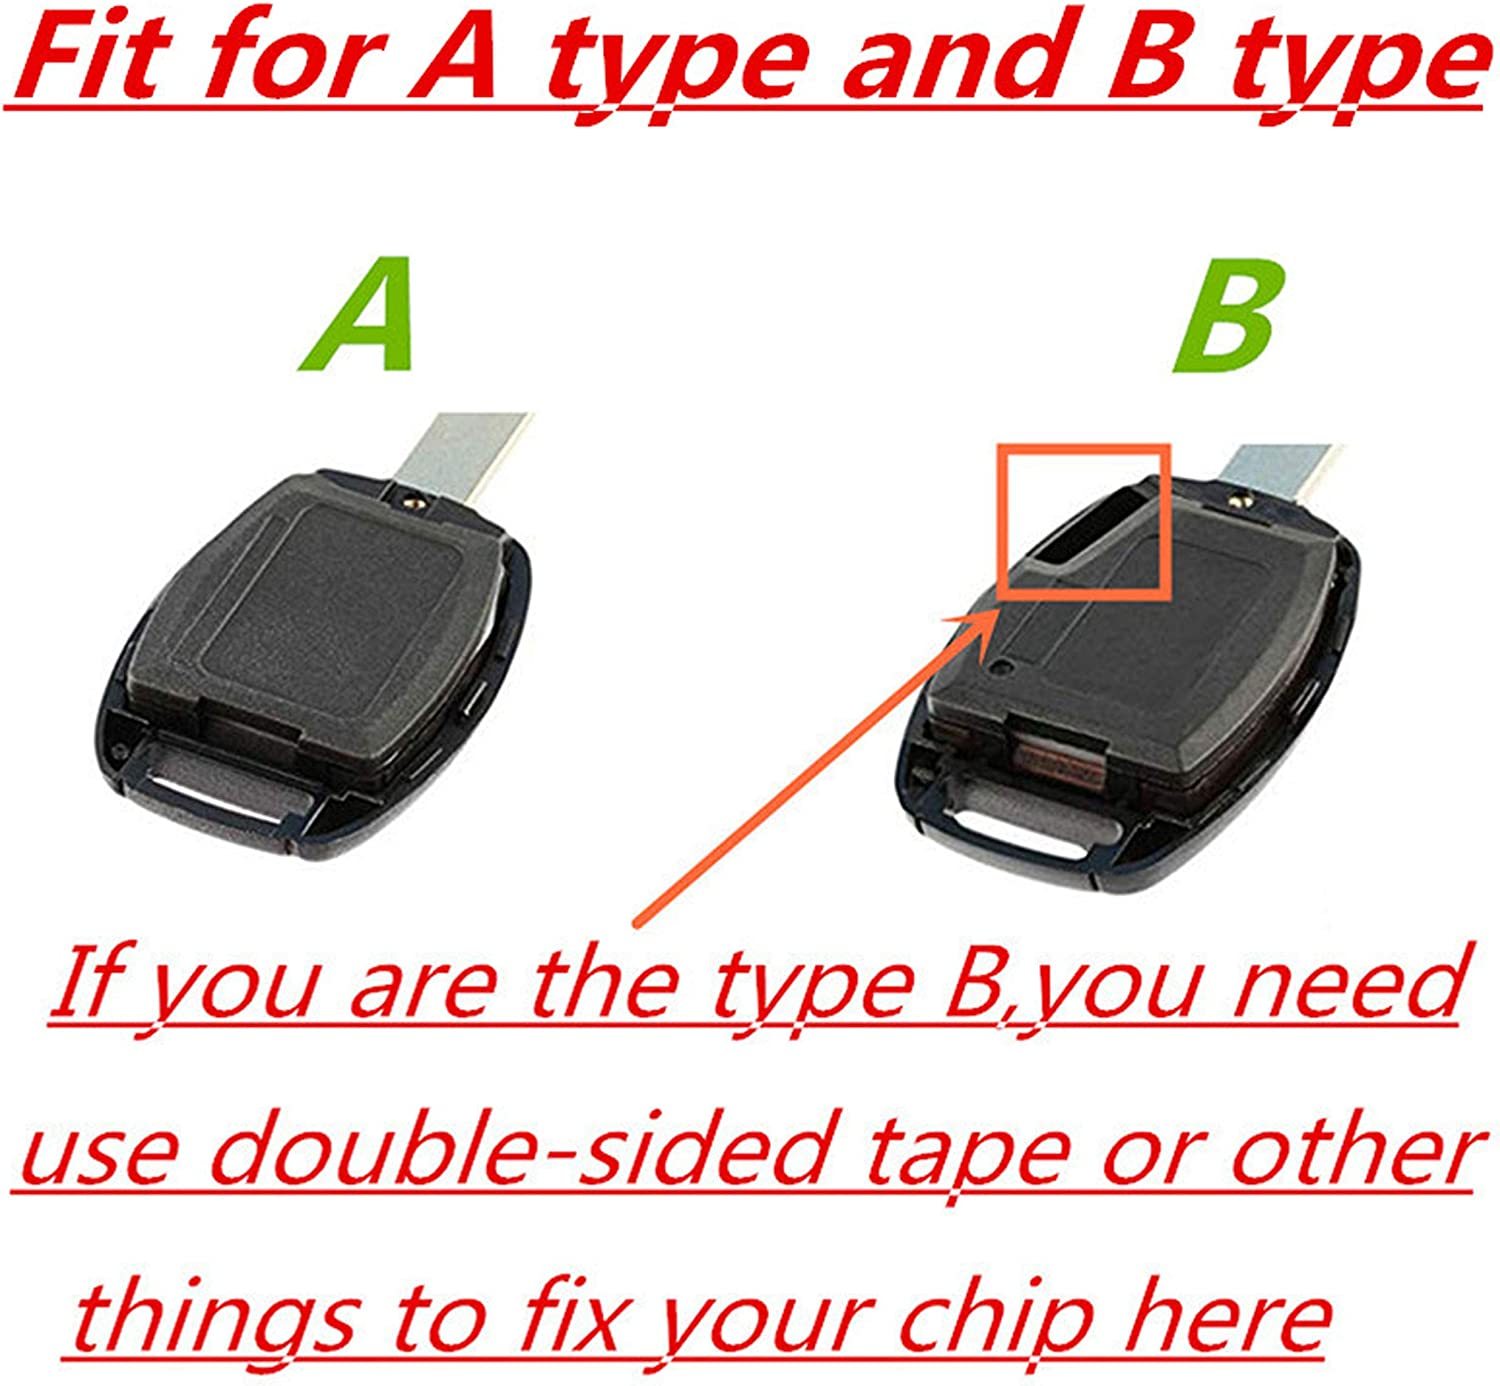 2 packs BINOWEN 3+1 Buttons Replacement For Key Fob Shell Keyless Entry Remote Honda Key Fob Case With Screwdriver Fit For Honda 2008-2012 Accord,2006-2013 Civic EX,2009-2015 Pilot Only Casing